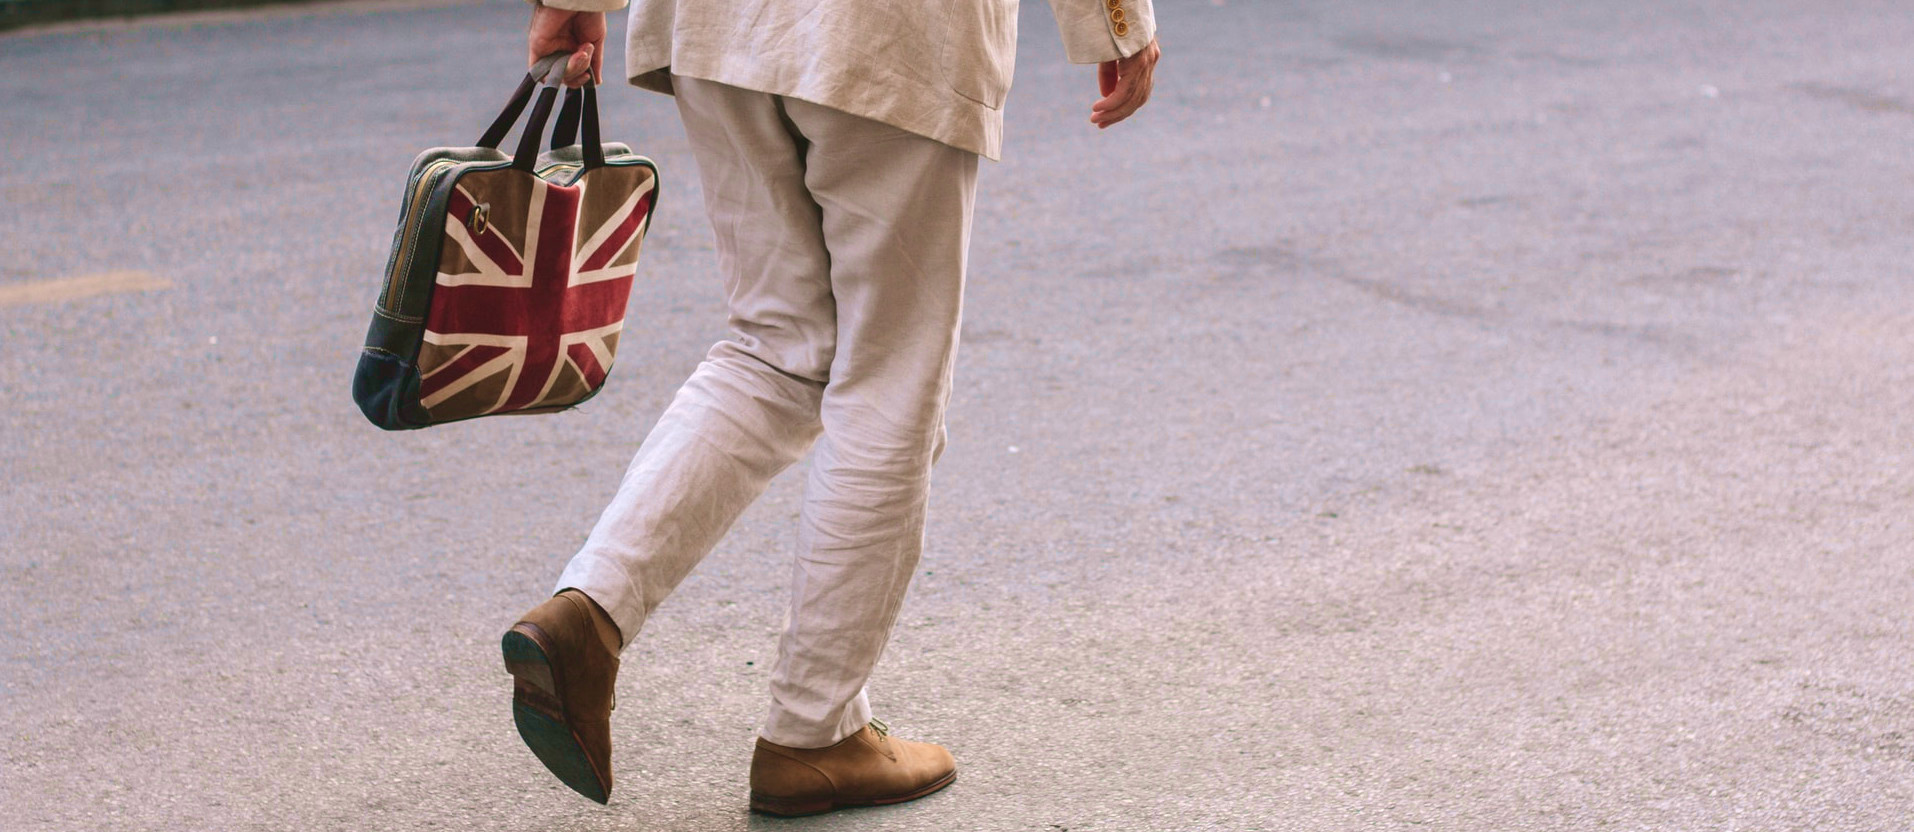 Man holding a bag with the Union Jack on it